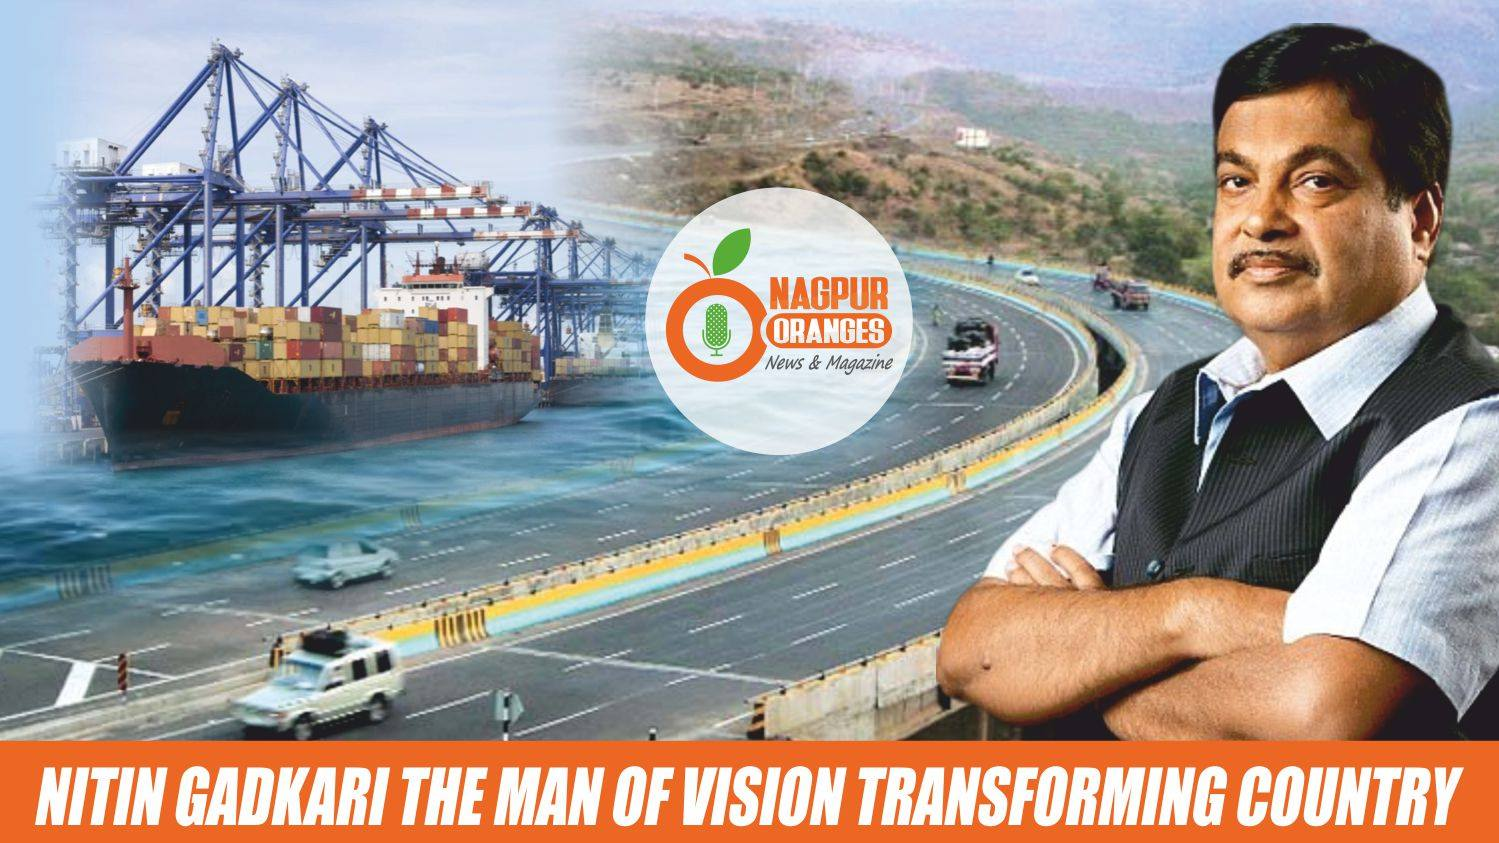 Photo of Nitin Gadkari an accomplished leader, industrialist and activist with vision